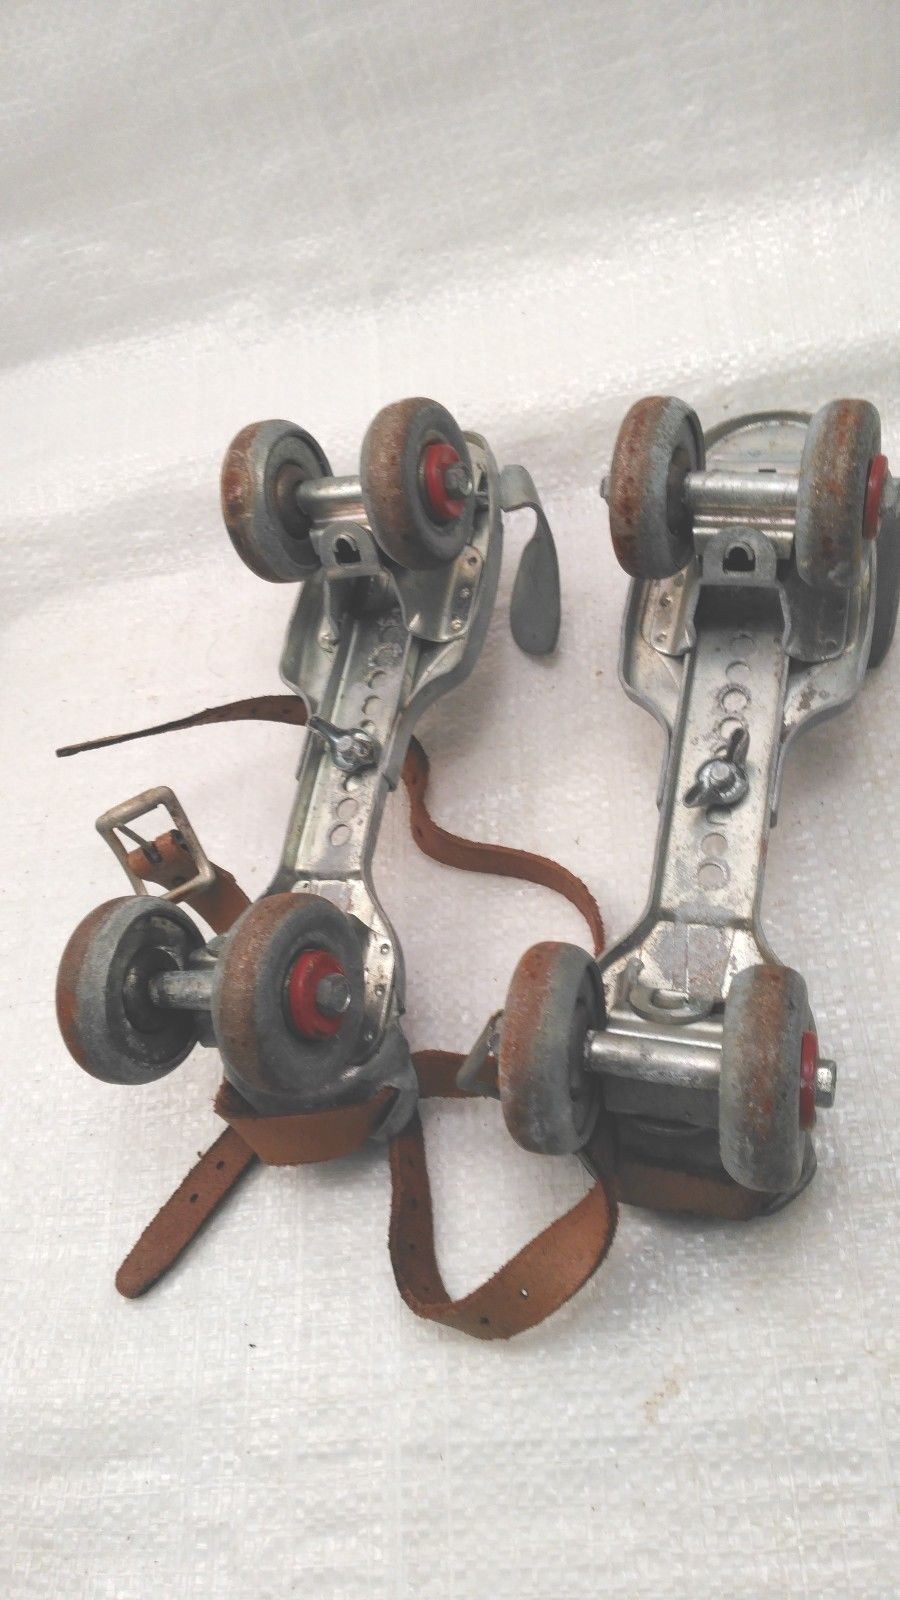 2 Pairs Antique Old Adjustable Metal Roller Skates Primitive Farm Country Decor!